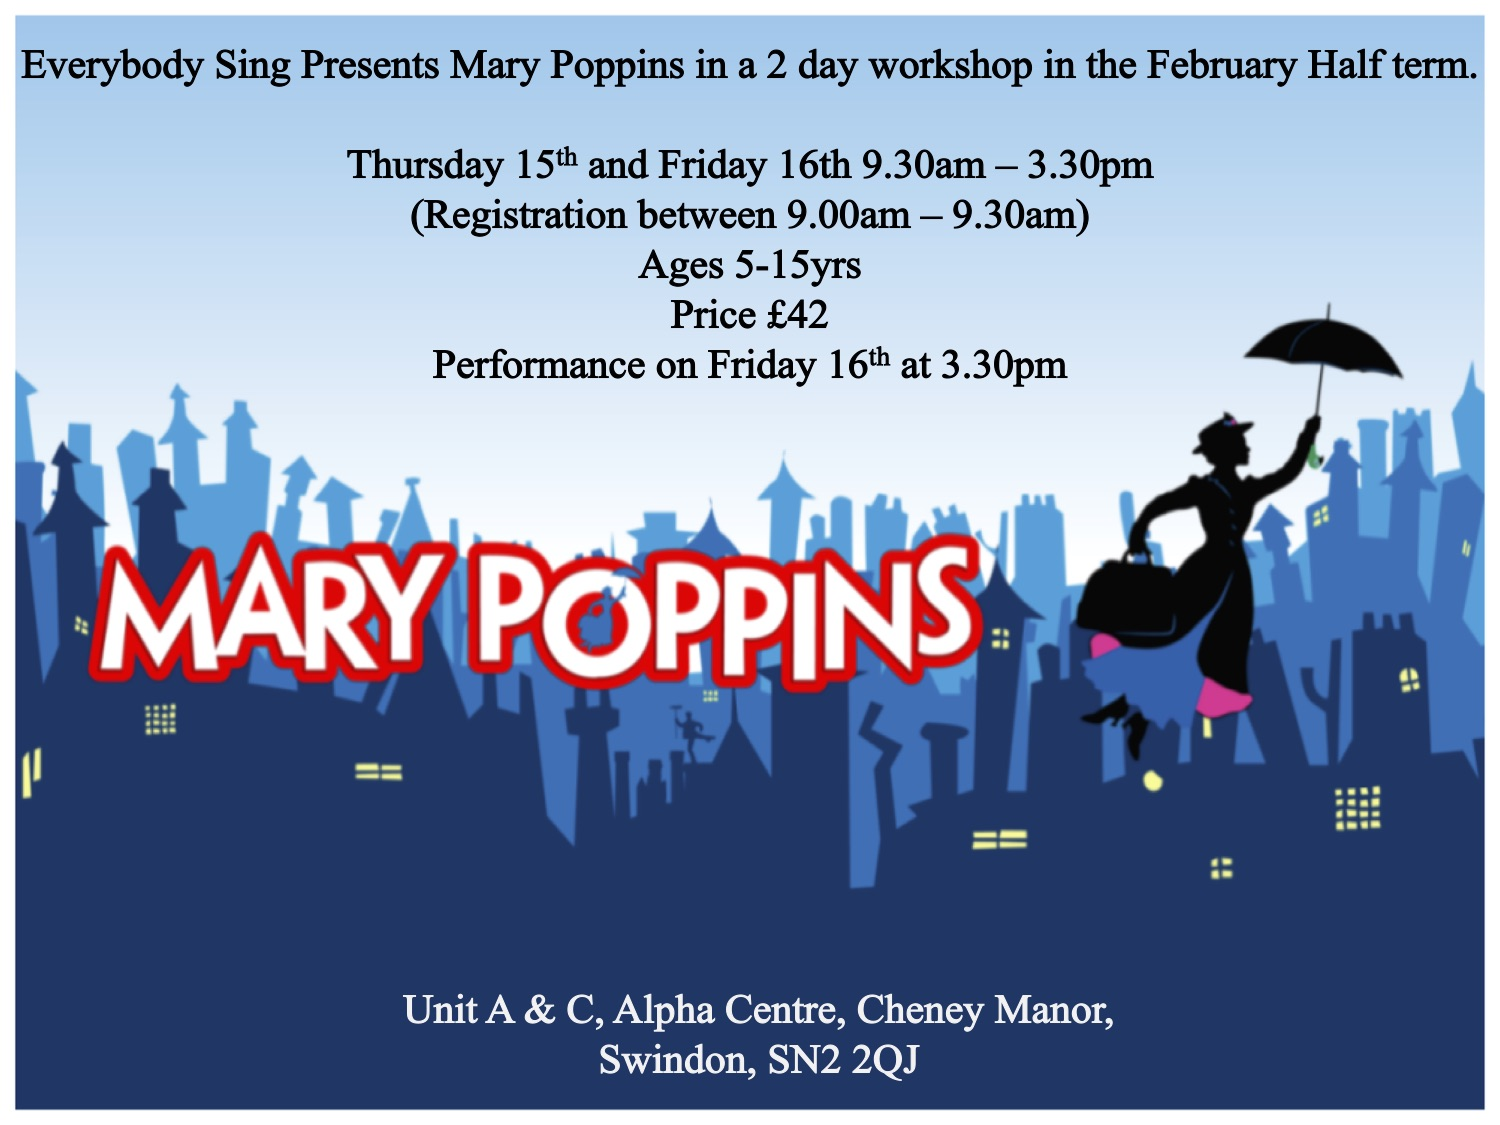 Mary Poppins - February Half Term Workshop